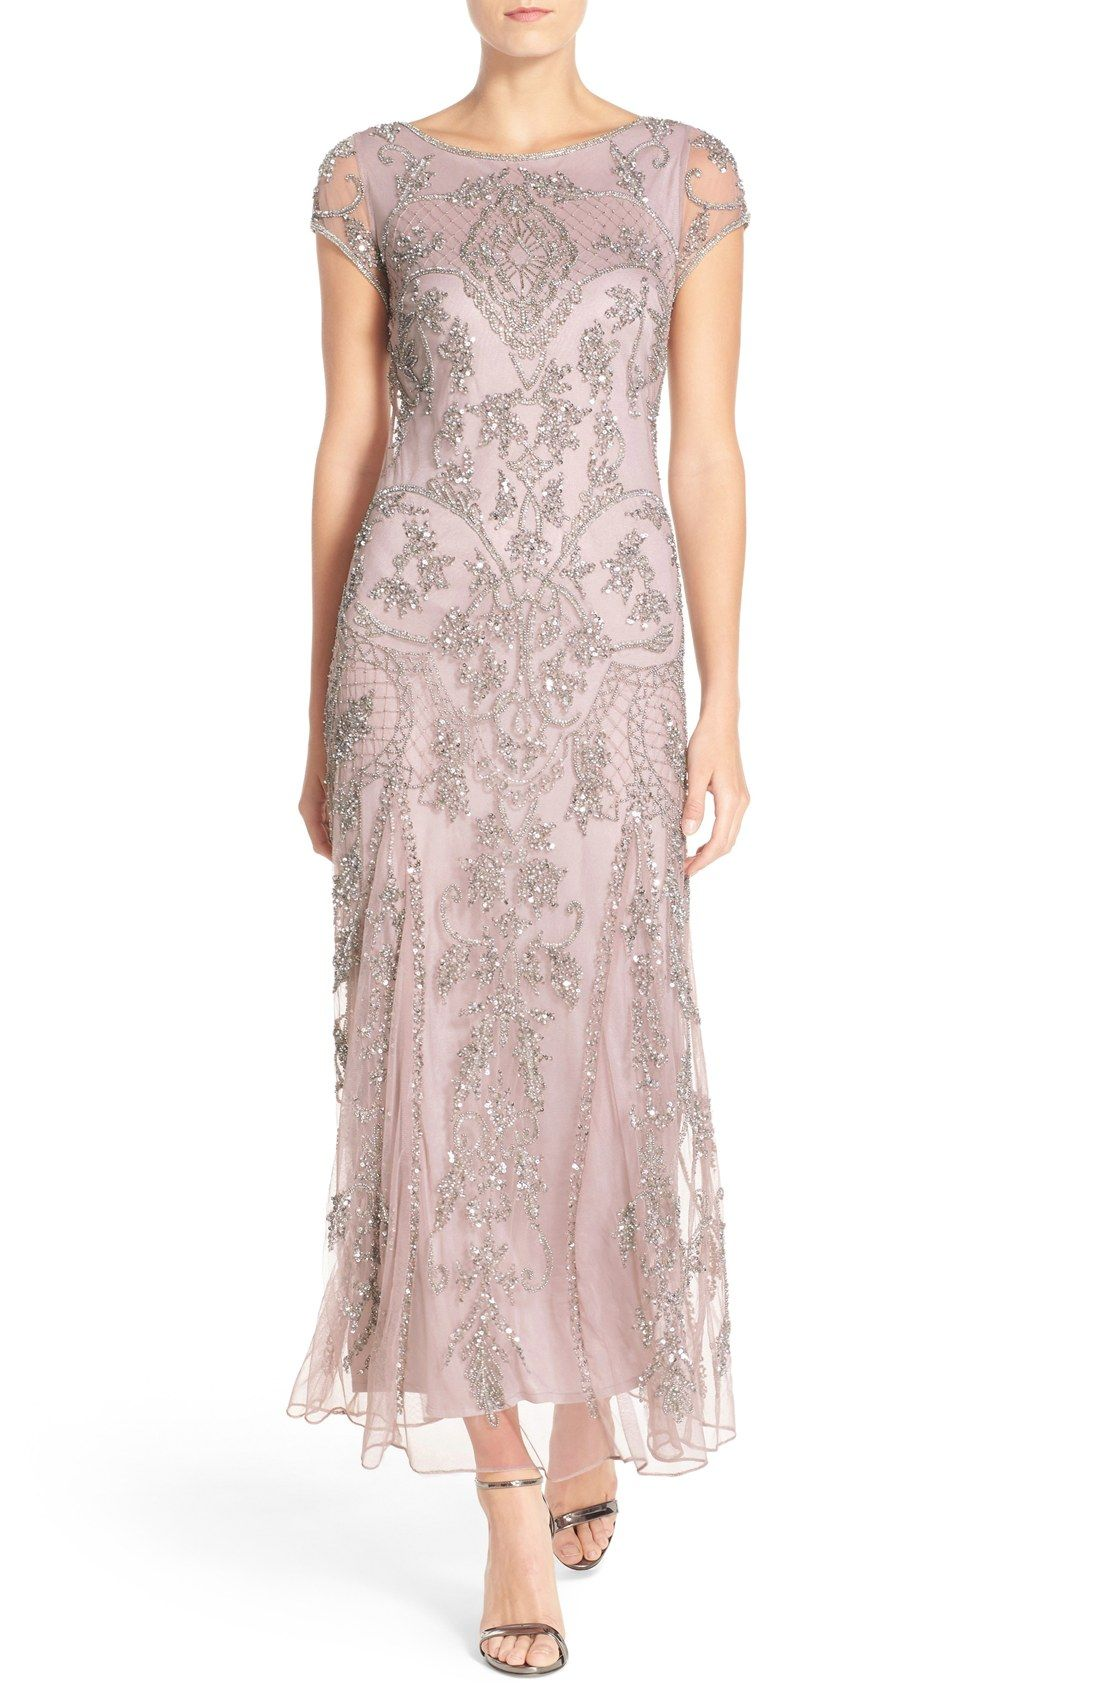 Hand Selected Mother Of The Bride Or Groom Dresses For Mothers To Wear Weddings